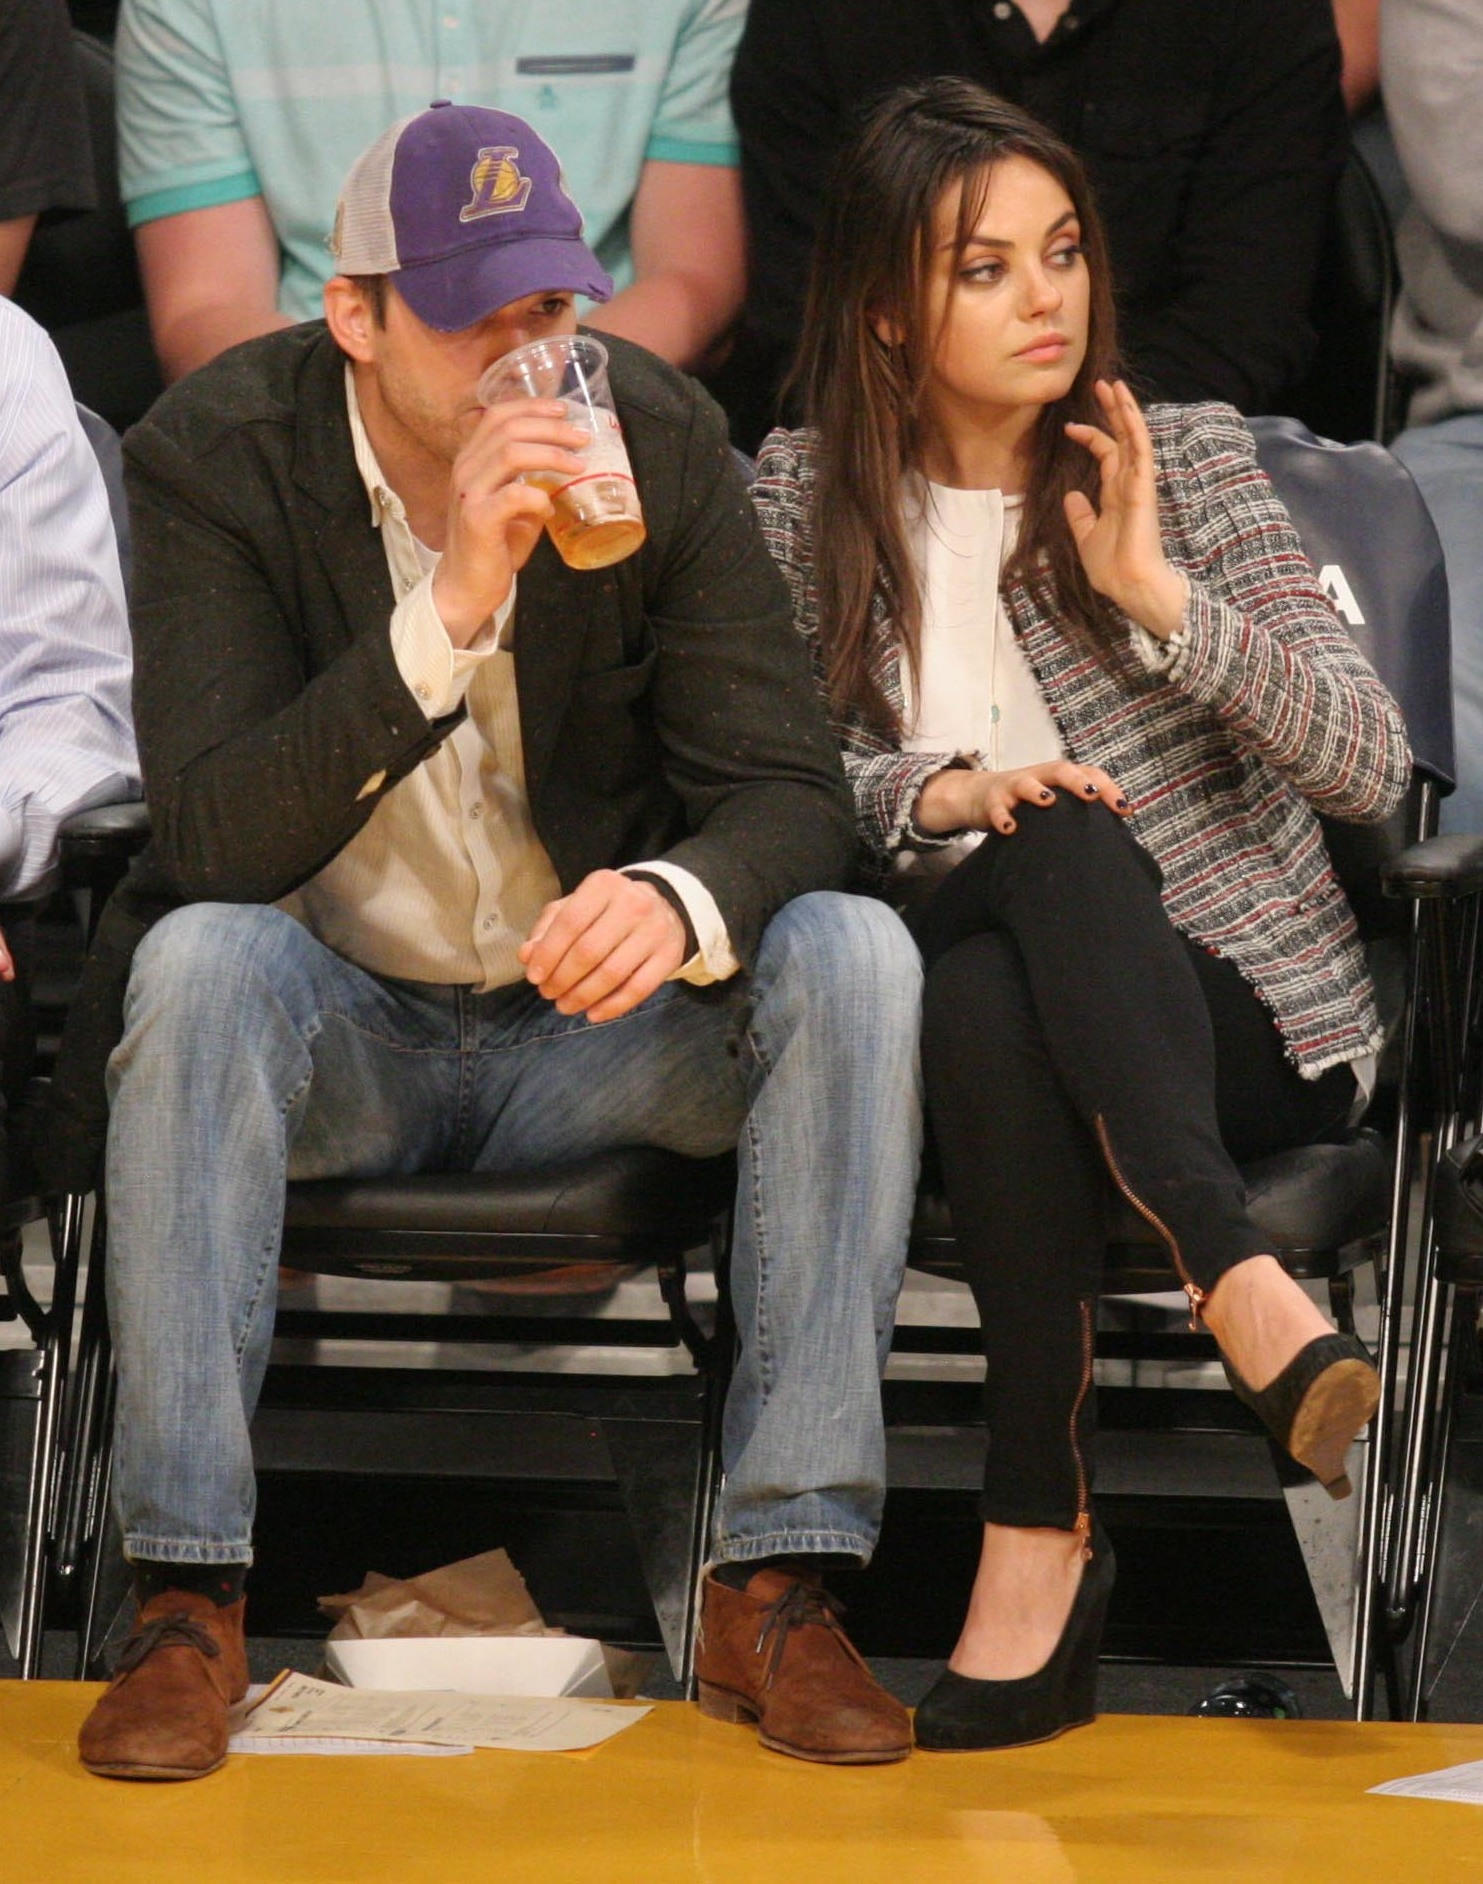 Celebrities courtside at the Los Angeles Lakers v New Orleans Pelicans NBA basketball game at the Staples Center. The Pelicans defeated the Lakers by a final score of 132-125.                                    Featuring: Ashton Kutcher, Mila Kunis                  Where: Los Angeles, California, United States                  When: 04 Mar 2014                  Credit: WENN.com